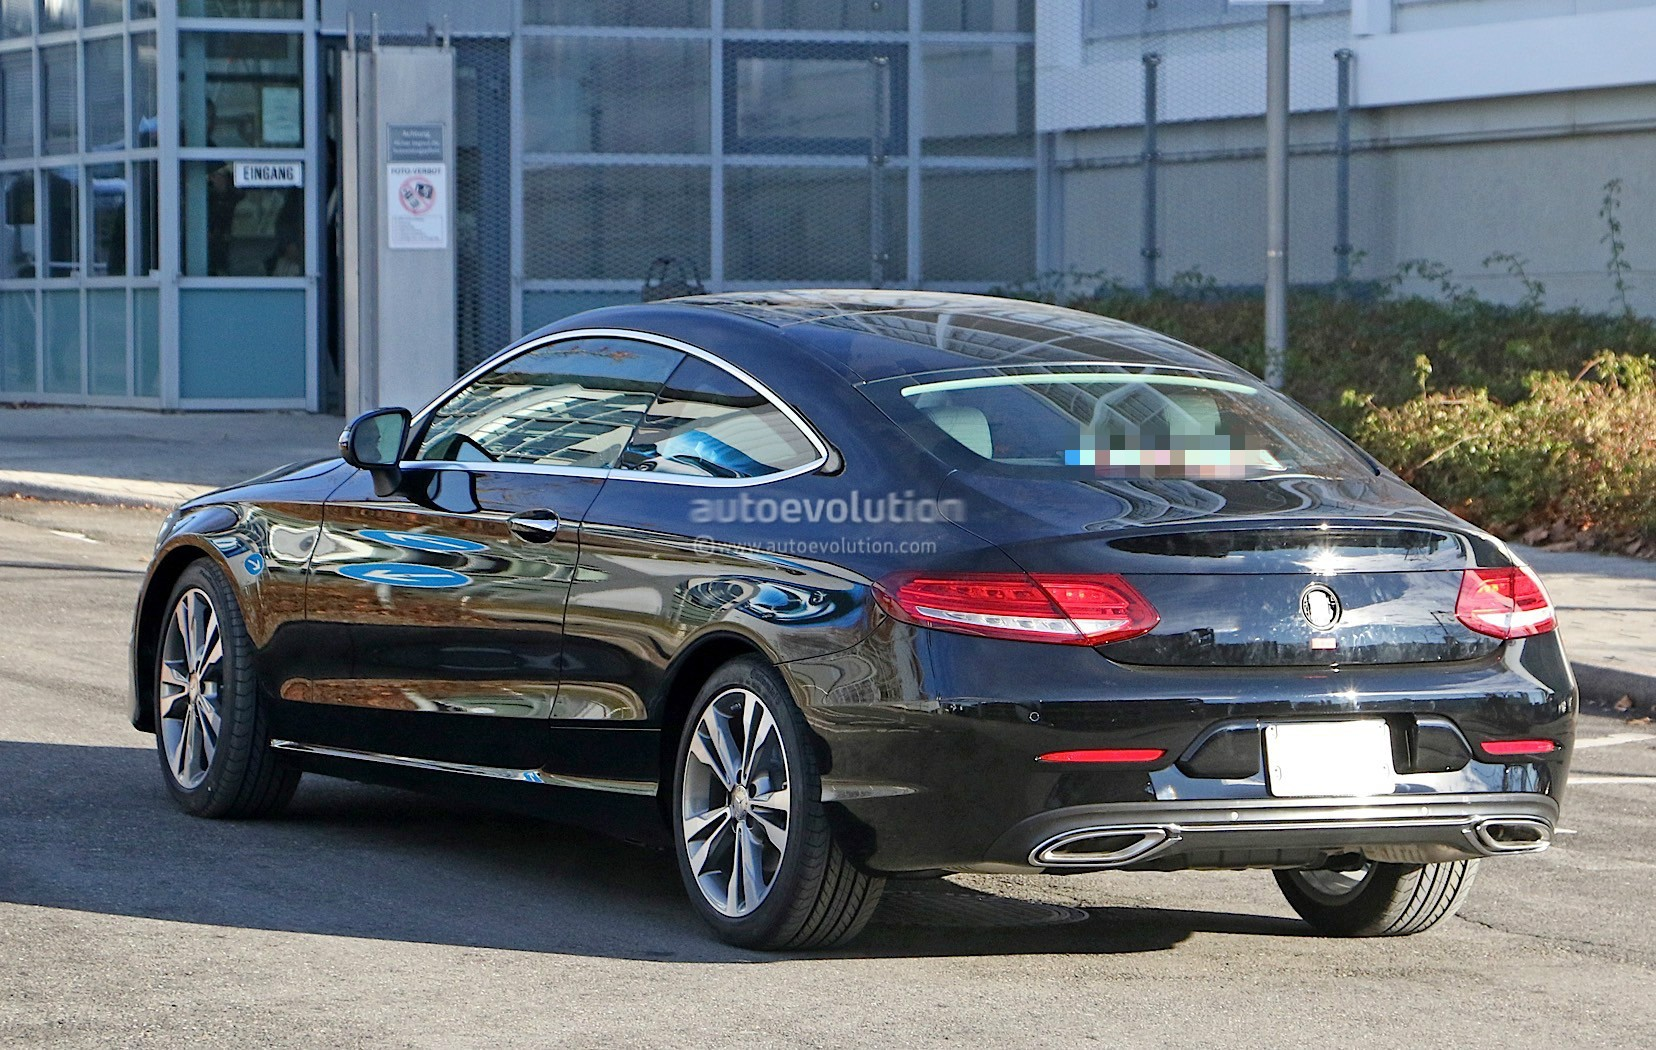 2019 mercedes benz c class coupe facelift shows all new led headlamps autoevolution - Mercedes c class coupe used ...